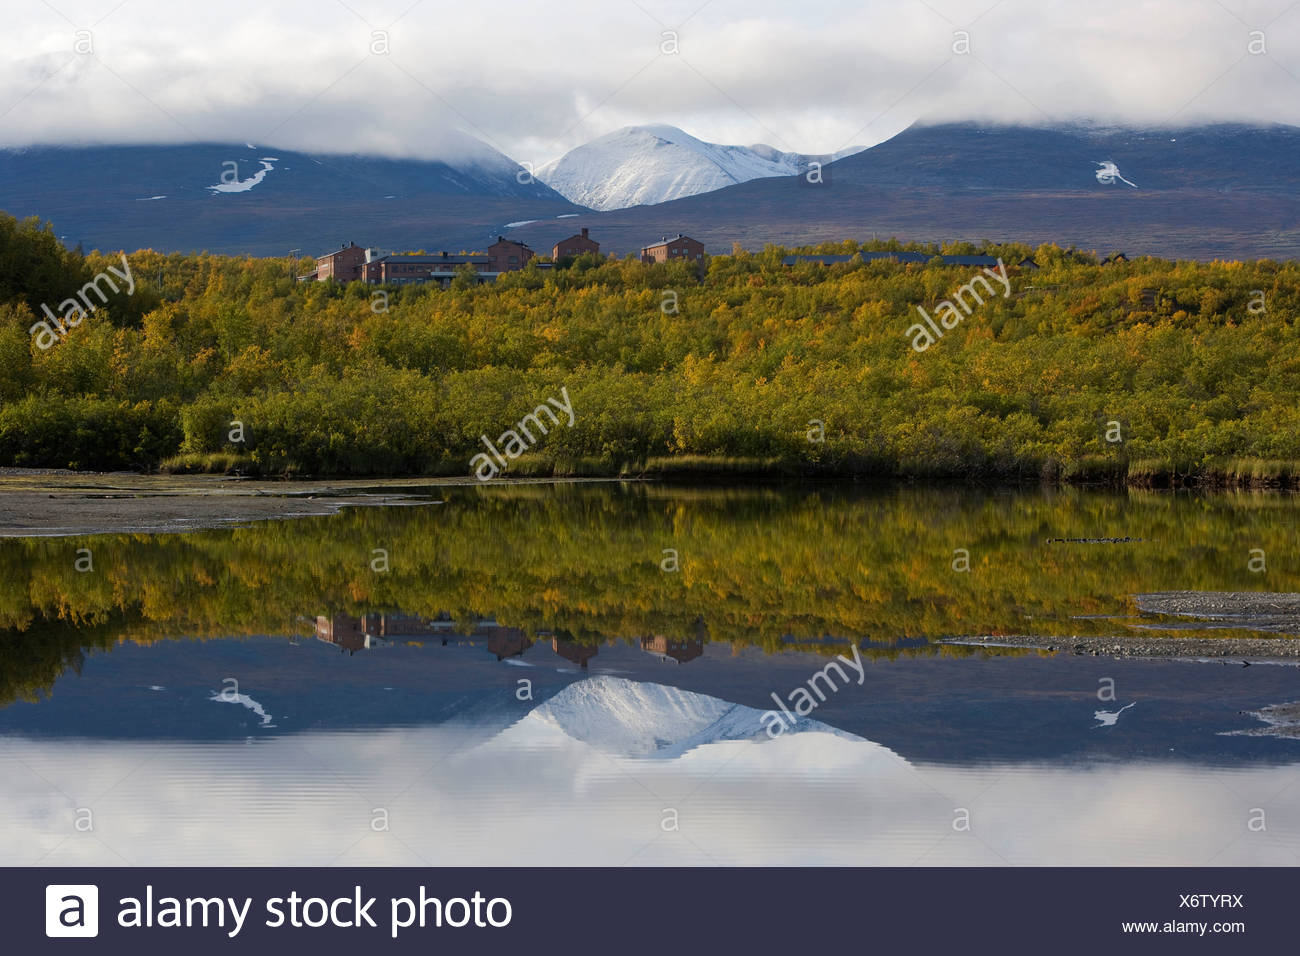 Reflection of the mountain and landscape in the peaceful lake at Lapland, Sweden - Stock Image